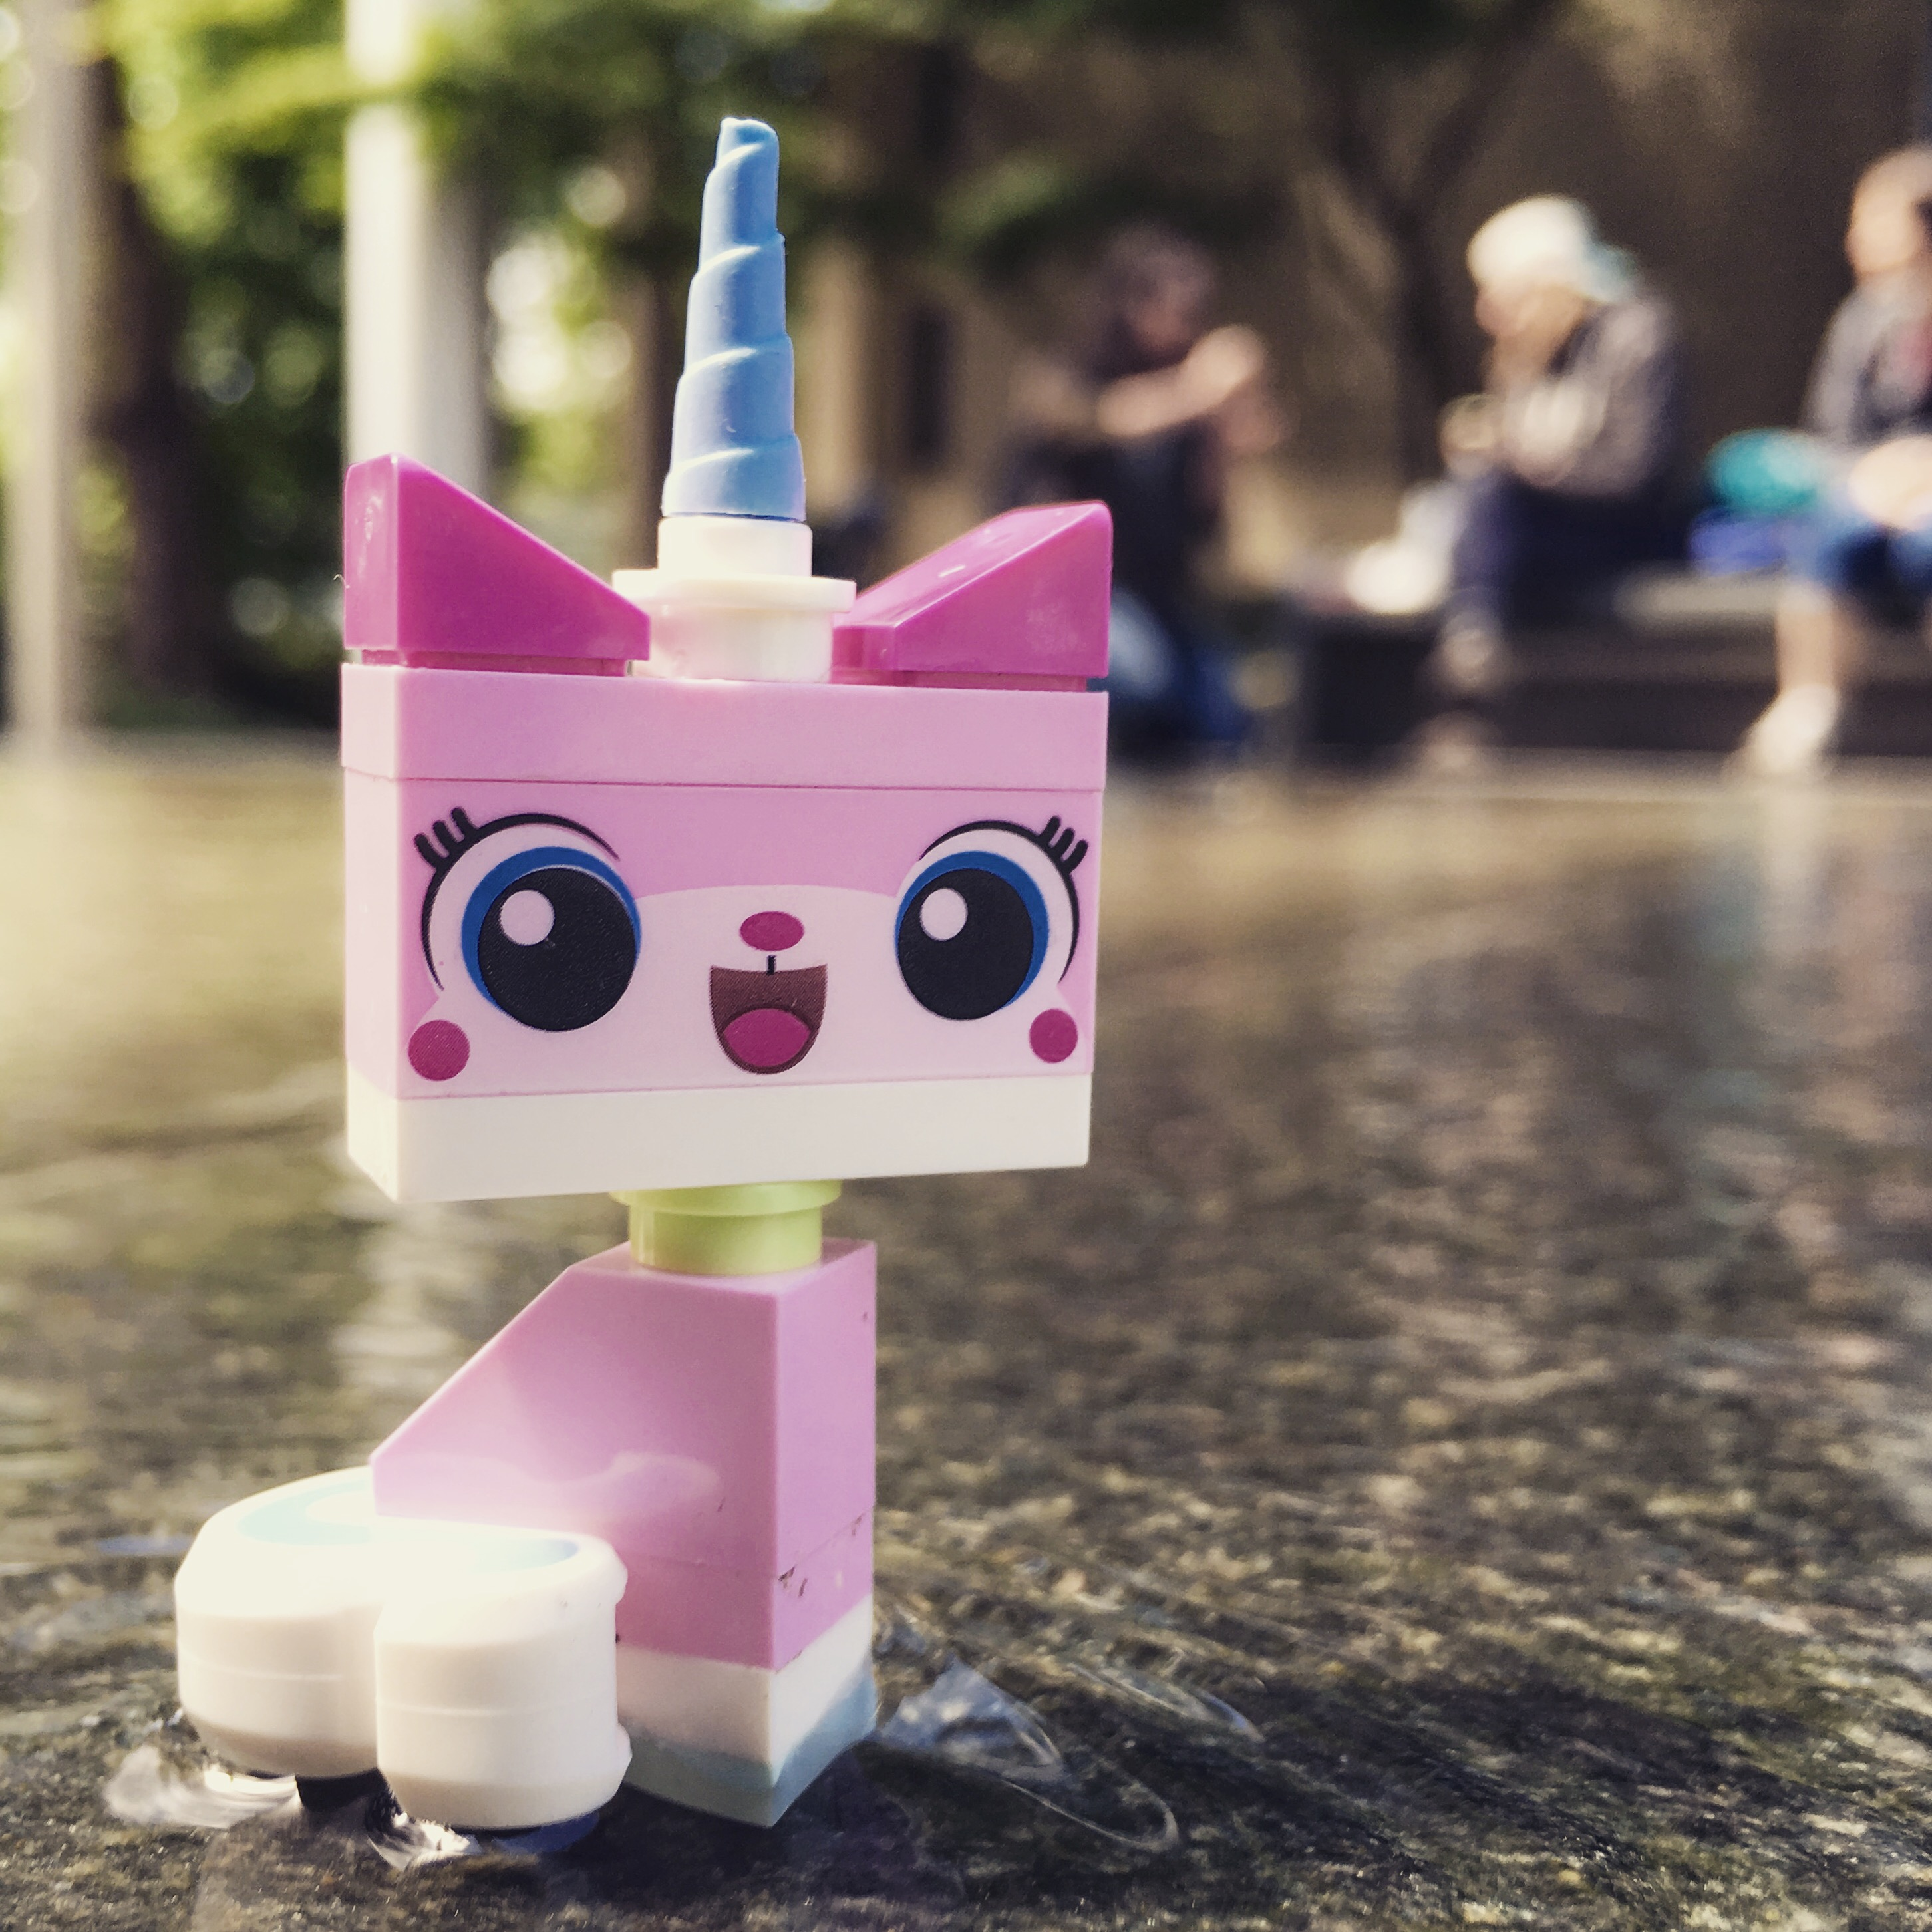 Lego-unikitty-outdoor-toy-photography